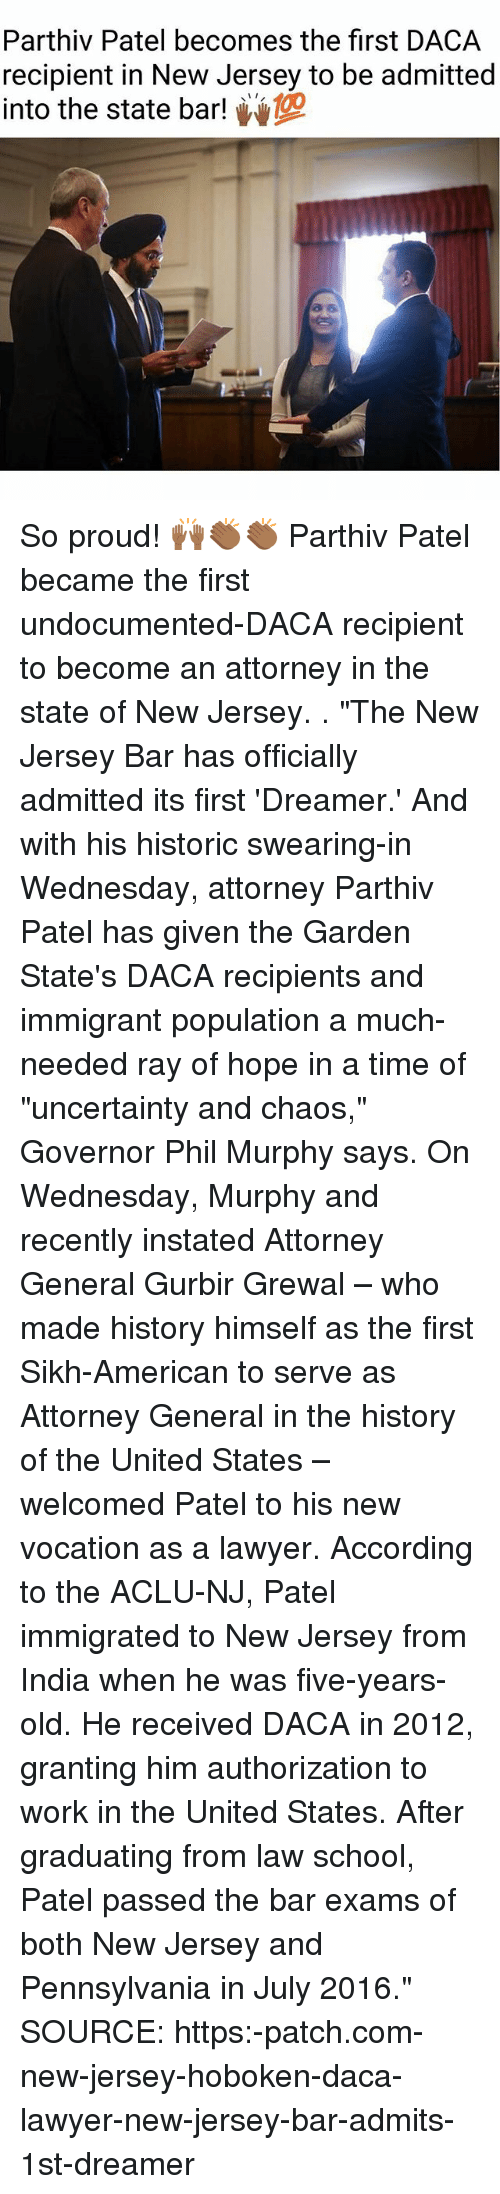 """Lawyer, Memes, and School: Parthiv Patel becomes the first DACA  recipient in New Jersey to be admitted  into the state bar! So proud! 🙌🏾👏🏾👏🏾 Parthiv Patel became the first undocumented-DACA recipient to become an attorney in the state of New Jersey. . """"The New Jersey Bar has officially admitted its first 'Dreamer.' And with his historic swearing-in Wednesday, attorney Parthiv Patel has given the Garden State's DACA recipients and immigrant population a much-needed ray of hope in a time of """"uncertainty and chaos,"""" Governor Phil Murphy says. On Wednesday, Murphy and recently instated Attorney General Gurbir Grewal – who made history himself as the first Sikh-American to serve as Attorney General in the history of the United States – welcomed Patel to his new vocation as a lawyer. According to the ACLU-NJ, Patel immigrated to New Jersey from India when he was five-years-old. He received DACA in 2012, granting him authorization to work in the United States. After graduating from law school, Patel passed the bar exams of both New Jersey and Pennsylvania in July 2016."""" SOURCE: https:-patch.com-new-jersey-hoboken-daca-lawyer-new-jersey-bar-admits-1st-dreamer"""